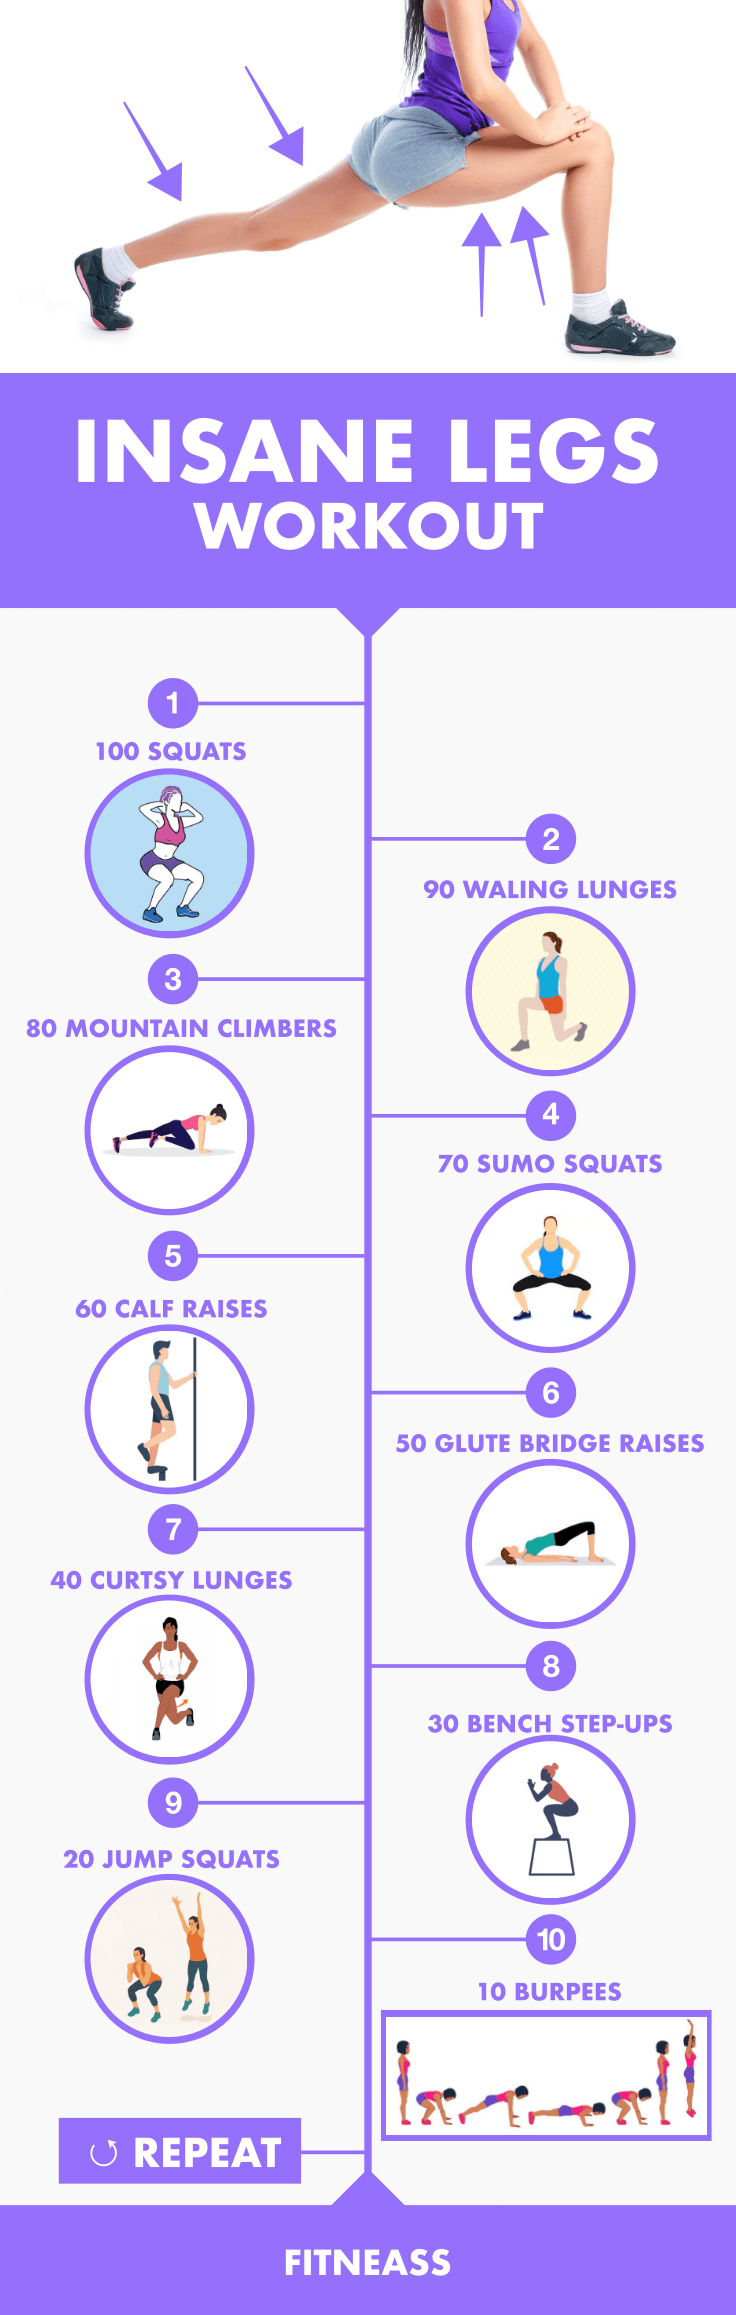 Insane Legs Workout - The One Hundred Challenge